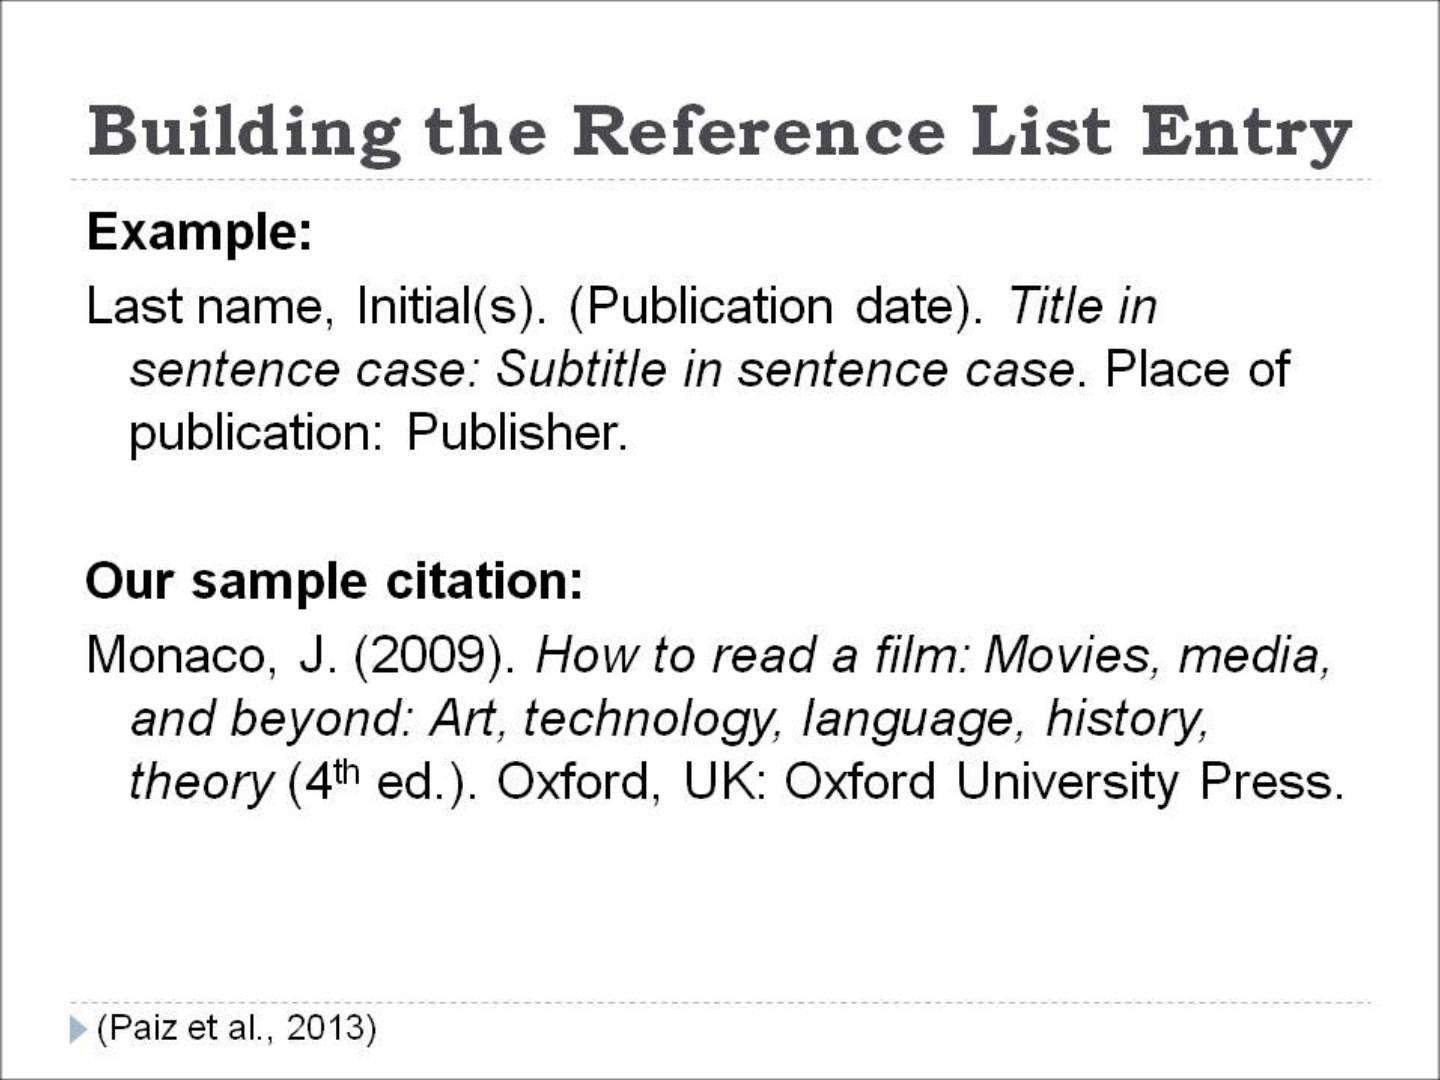 apa style citation format What is the point of a citation you need to understand why and how to use citations to help you avoid plagiarism use this interactive tutorial to begin to understand the importance and mechanics of avoiding plagiarism through proper citing: usc library lessons: avoiding plagiarism through citations.